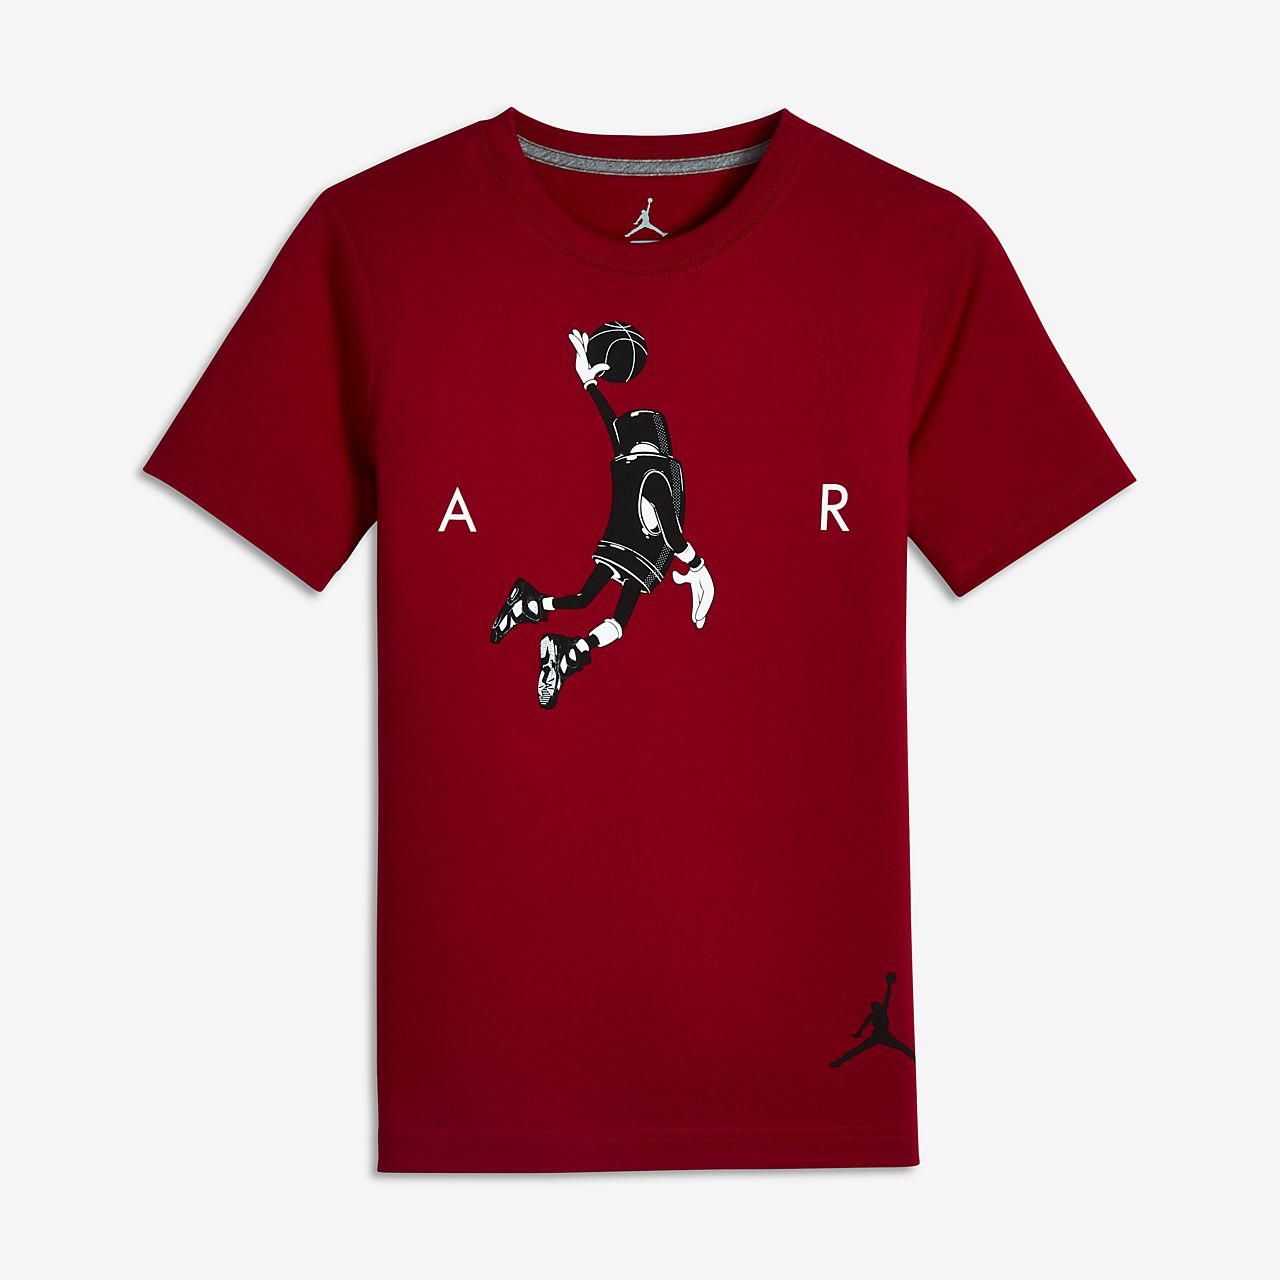 ... Jordan Jumping I Air Jordan Big Kids' (Boys') T-Shirt